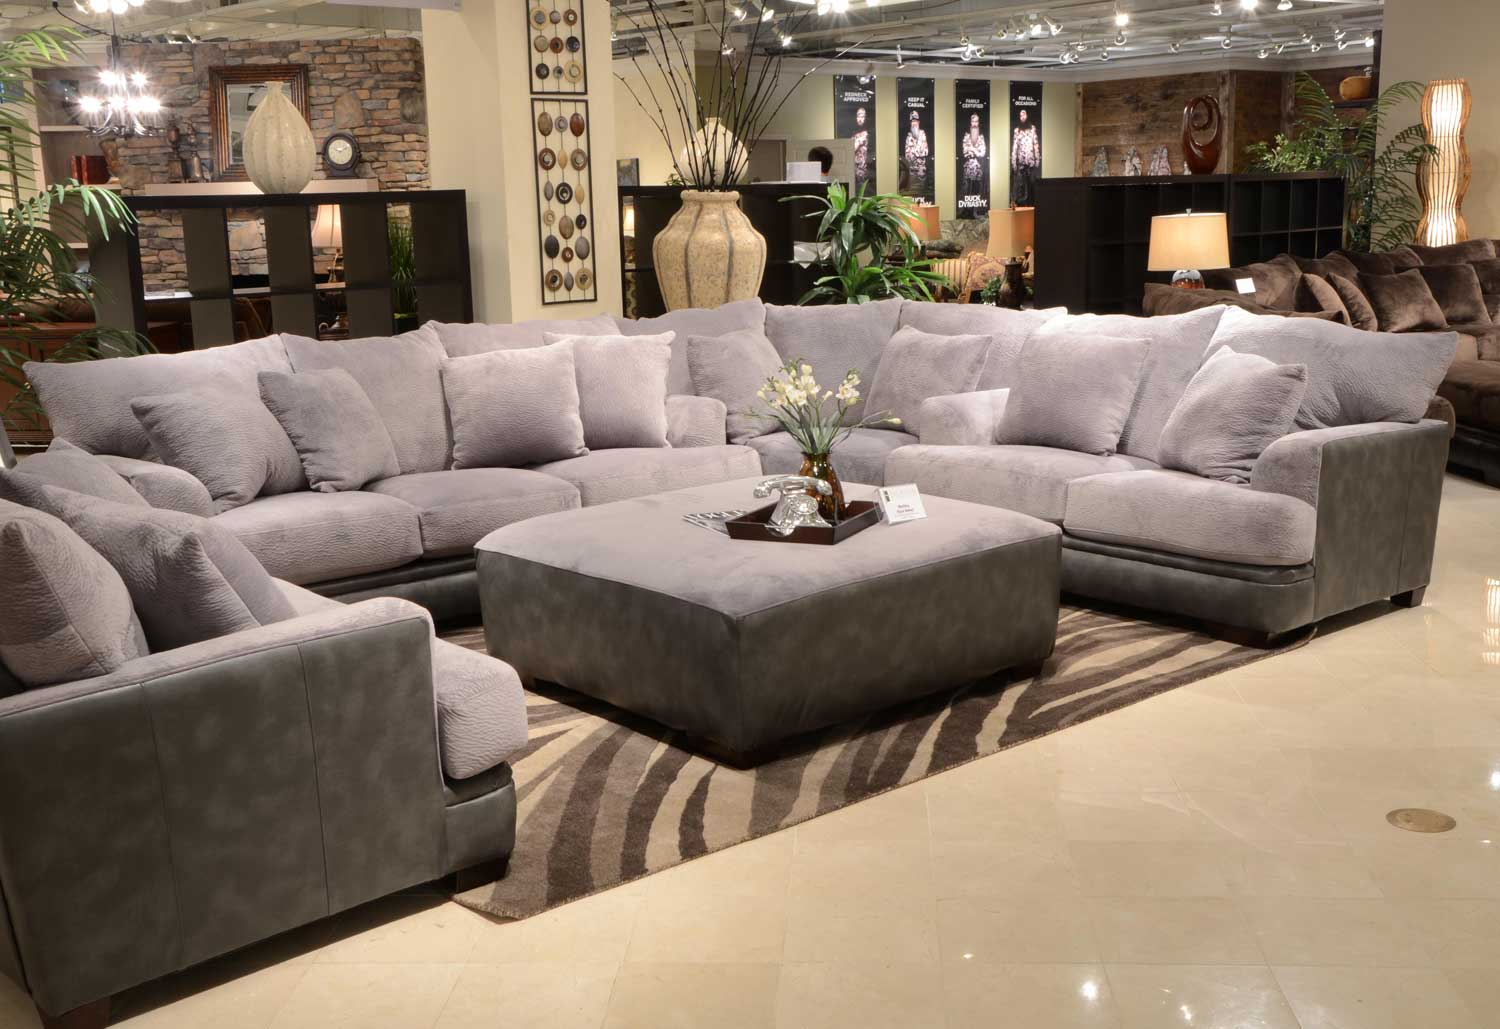 Jackson barkley sectional sofa set grey jf 4442 sect set for Large 3 piece sectional sofa